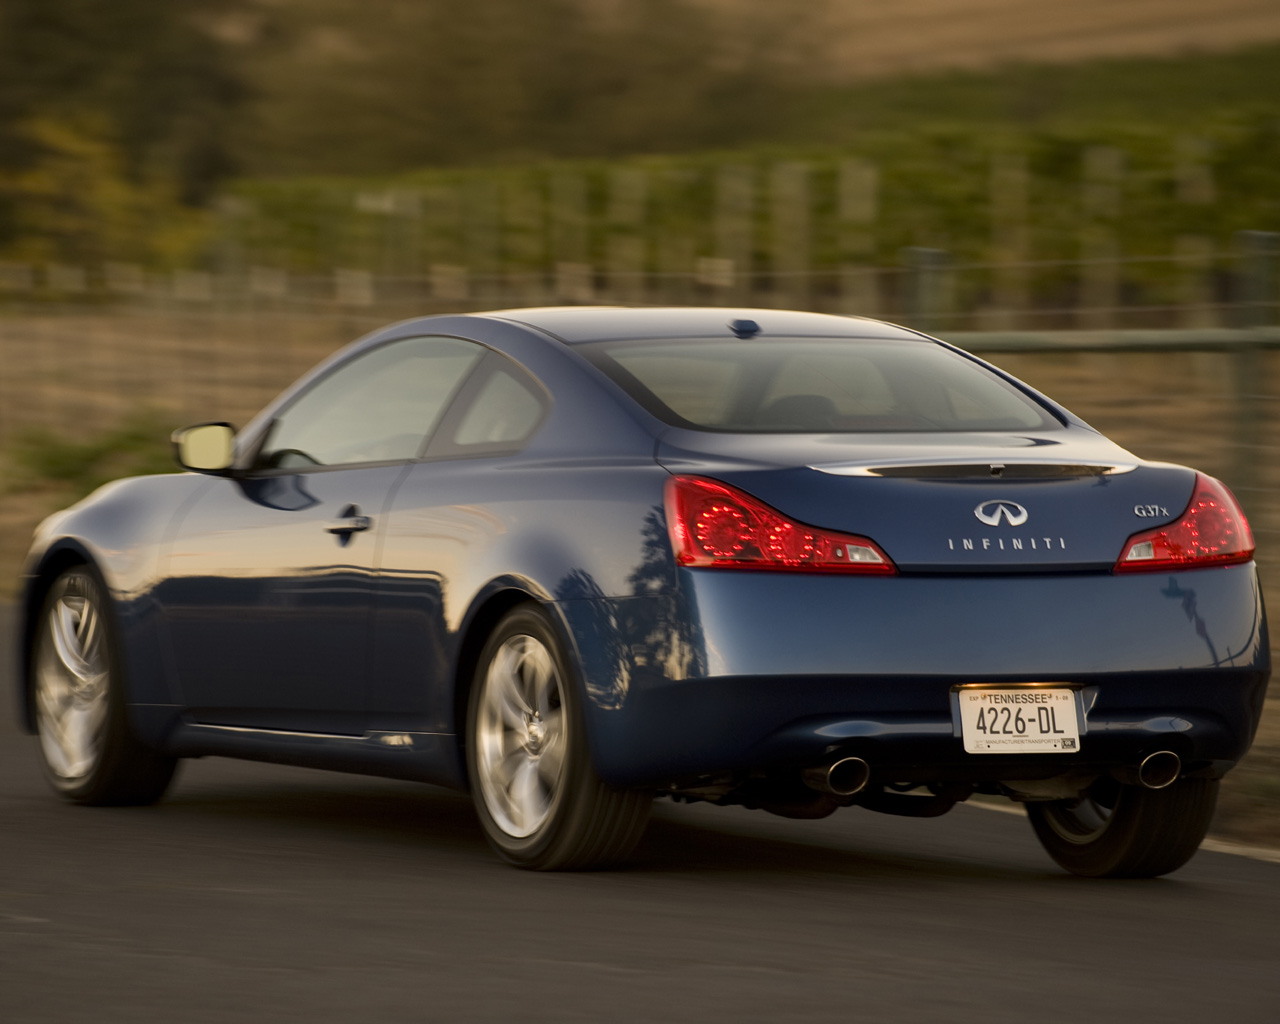 2008 2011 infiniti g37x coupe free 1280x1024 wallpaper. Black Bedroom Furniture Sets. Home Design Ideas